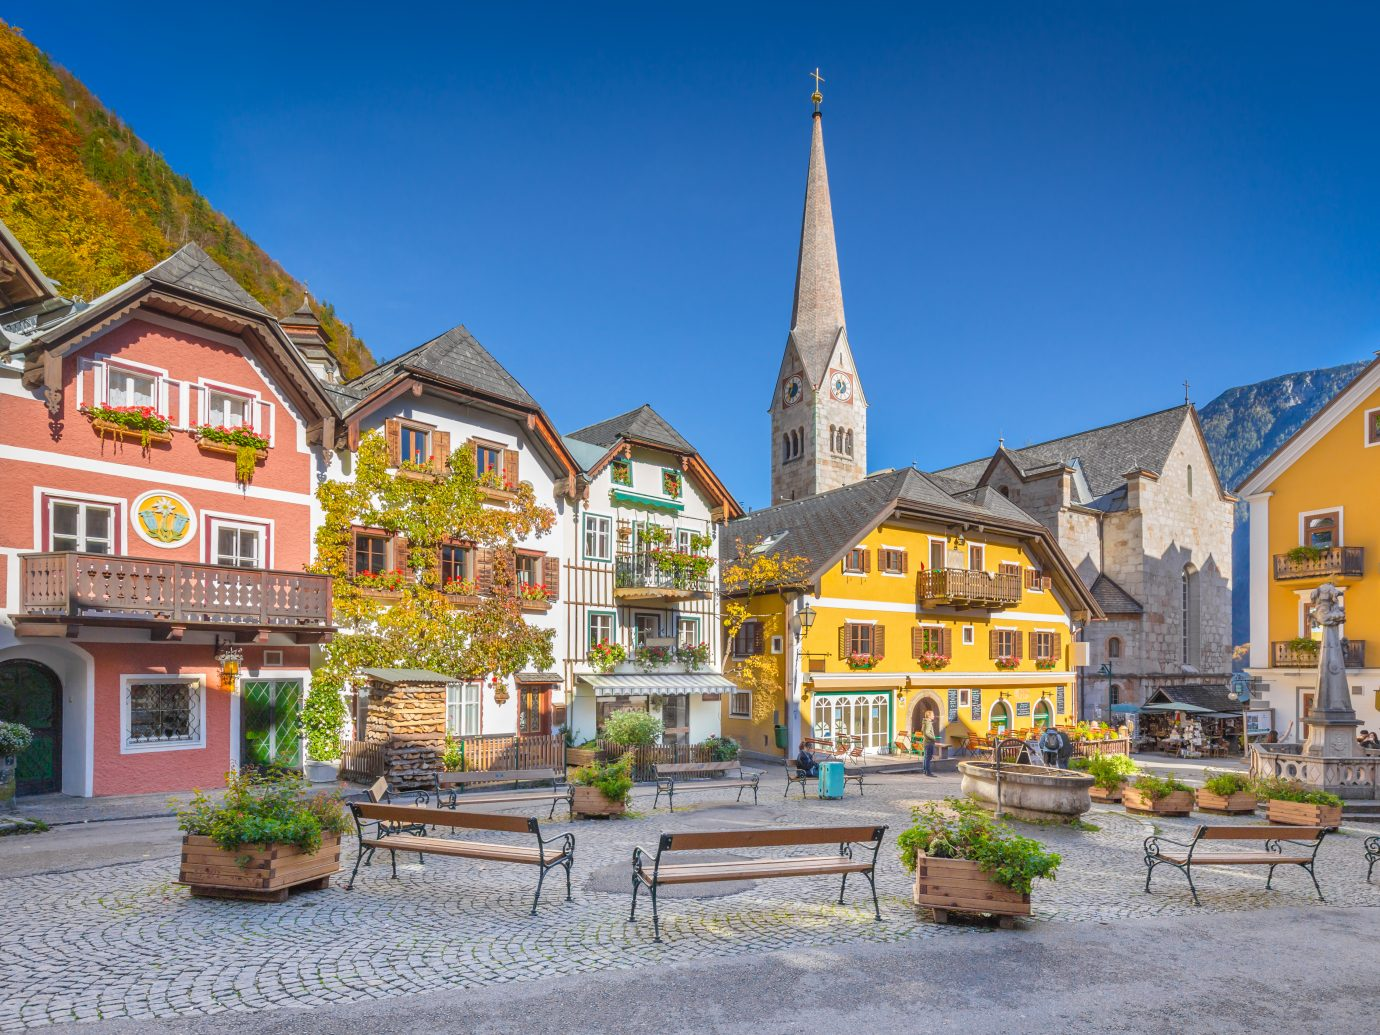 view of the historic town square of Hallstatt Austria